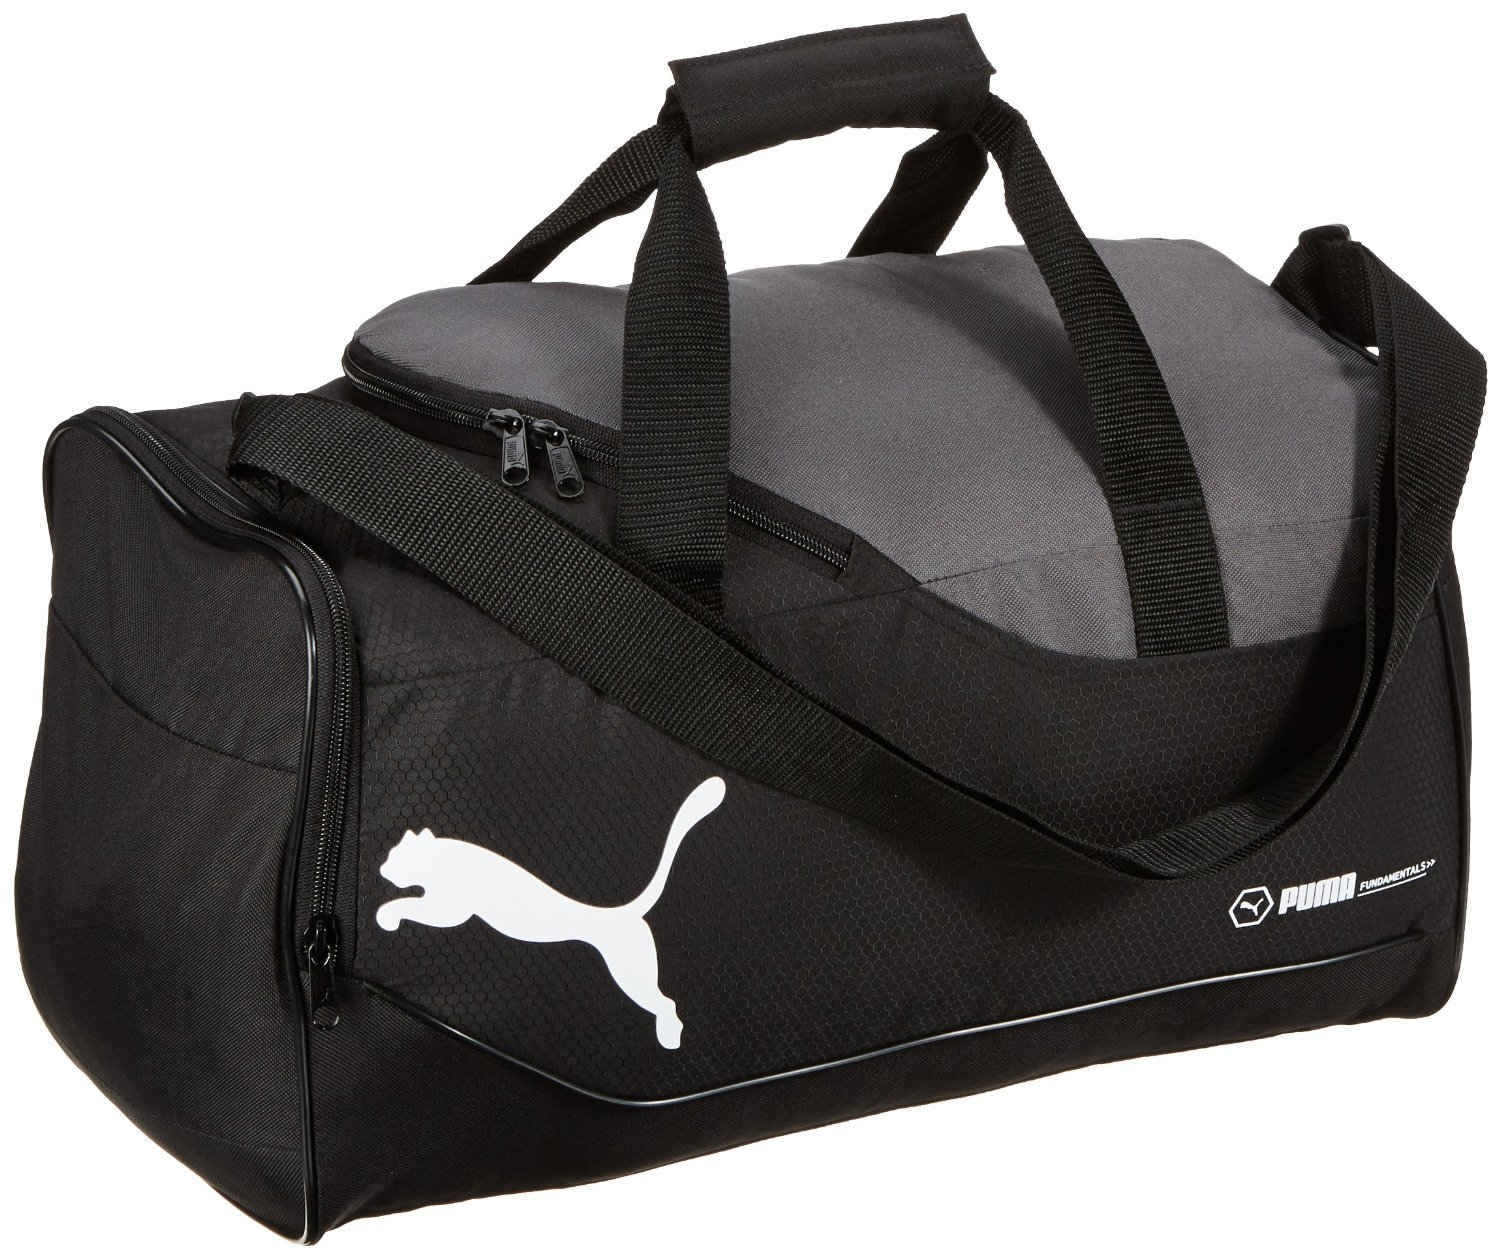 Buy Puma fundamental sports bag (07196301) Small Black-Dark Shadow-White  Online at Low Prices in India - Amazon.in 881db45668b15